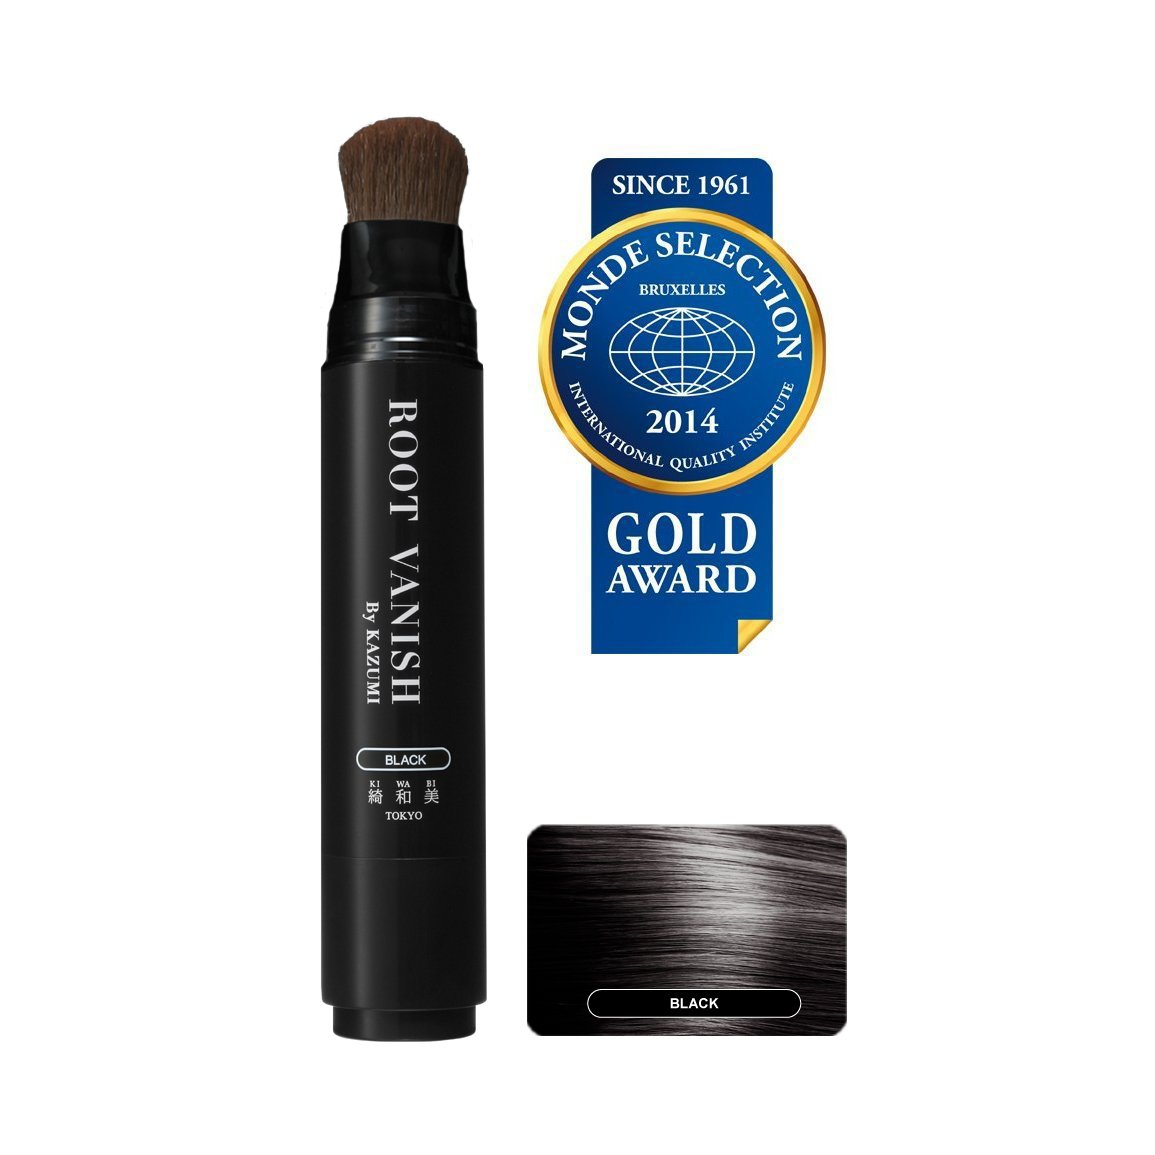 ROOT VANISH BY KAZUMI in Black Instantly Camouflages Gray Roots and Hair with Natural Anti-Aging Botanicals. 100 Click Pumps (20ml / 0.7oz) Lasts 2-3 Months. Carries You Over Between Salon Color Appointments.